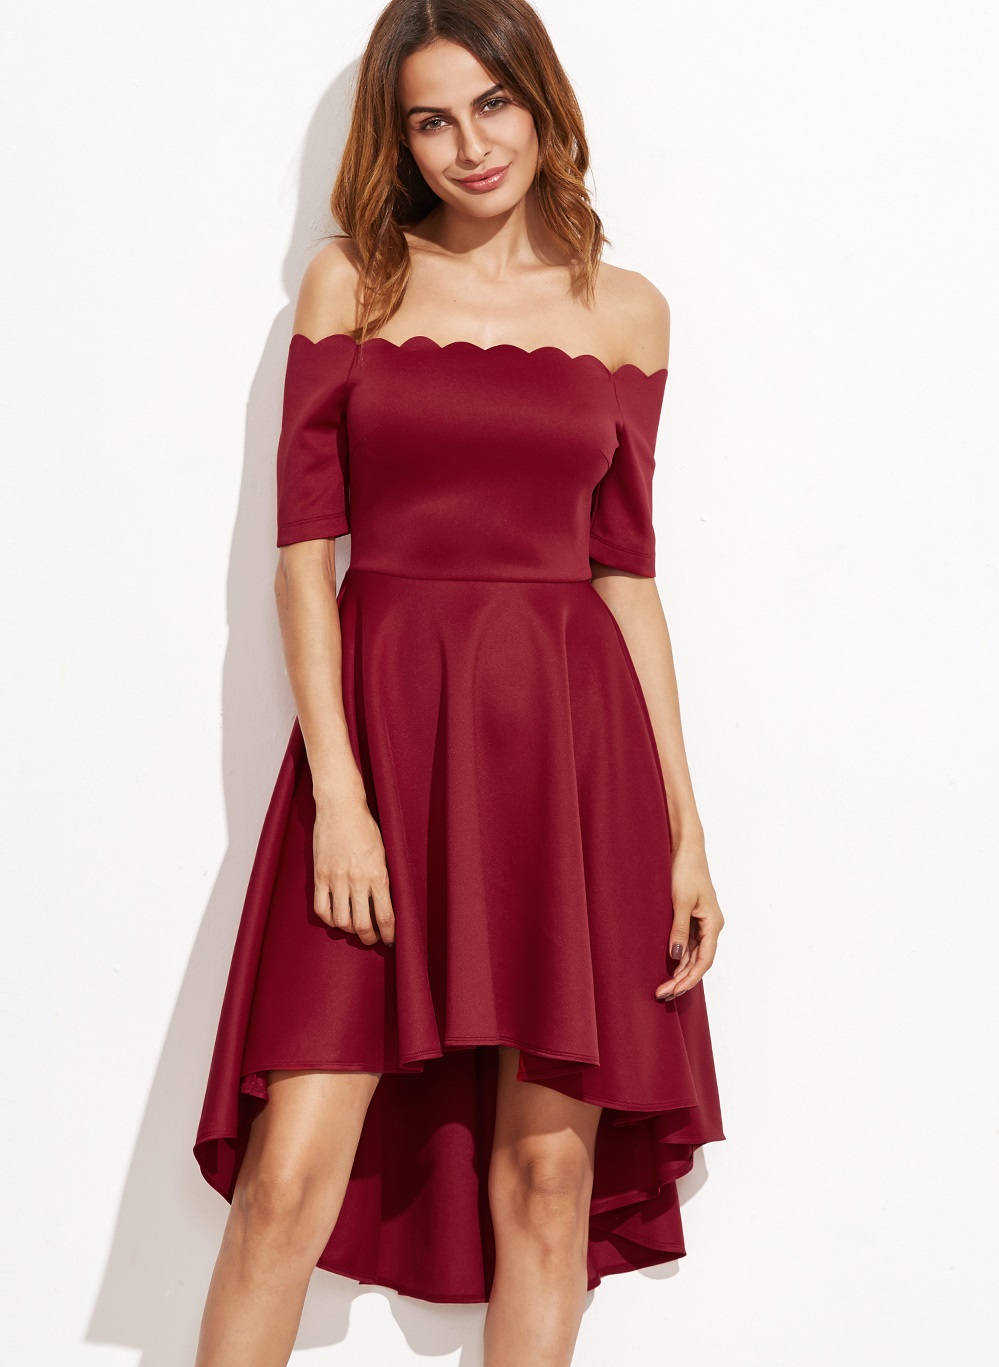 bb7982bdc876 US  8.3 - Off Shoulder High Low Skater Dress - www.global-lover.com